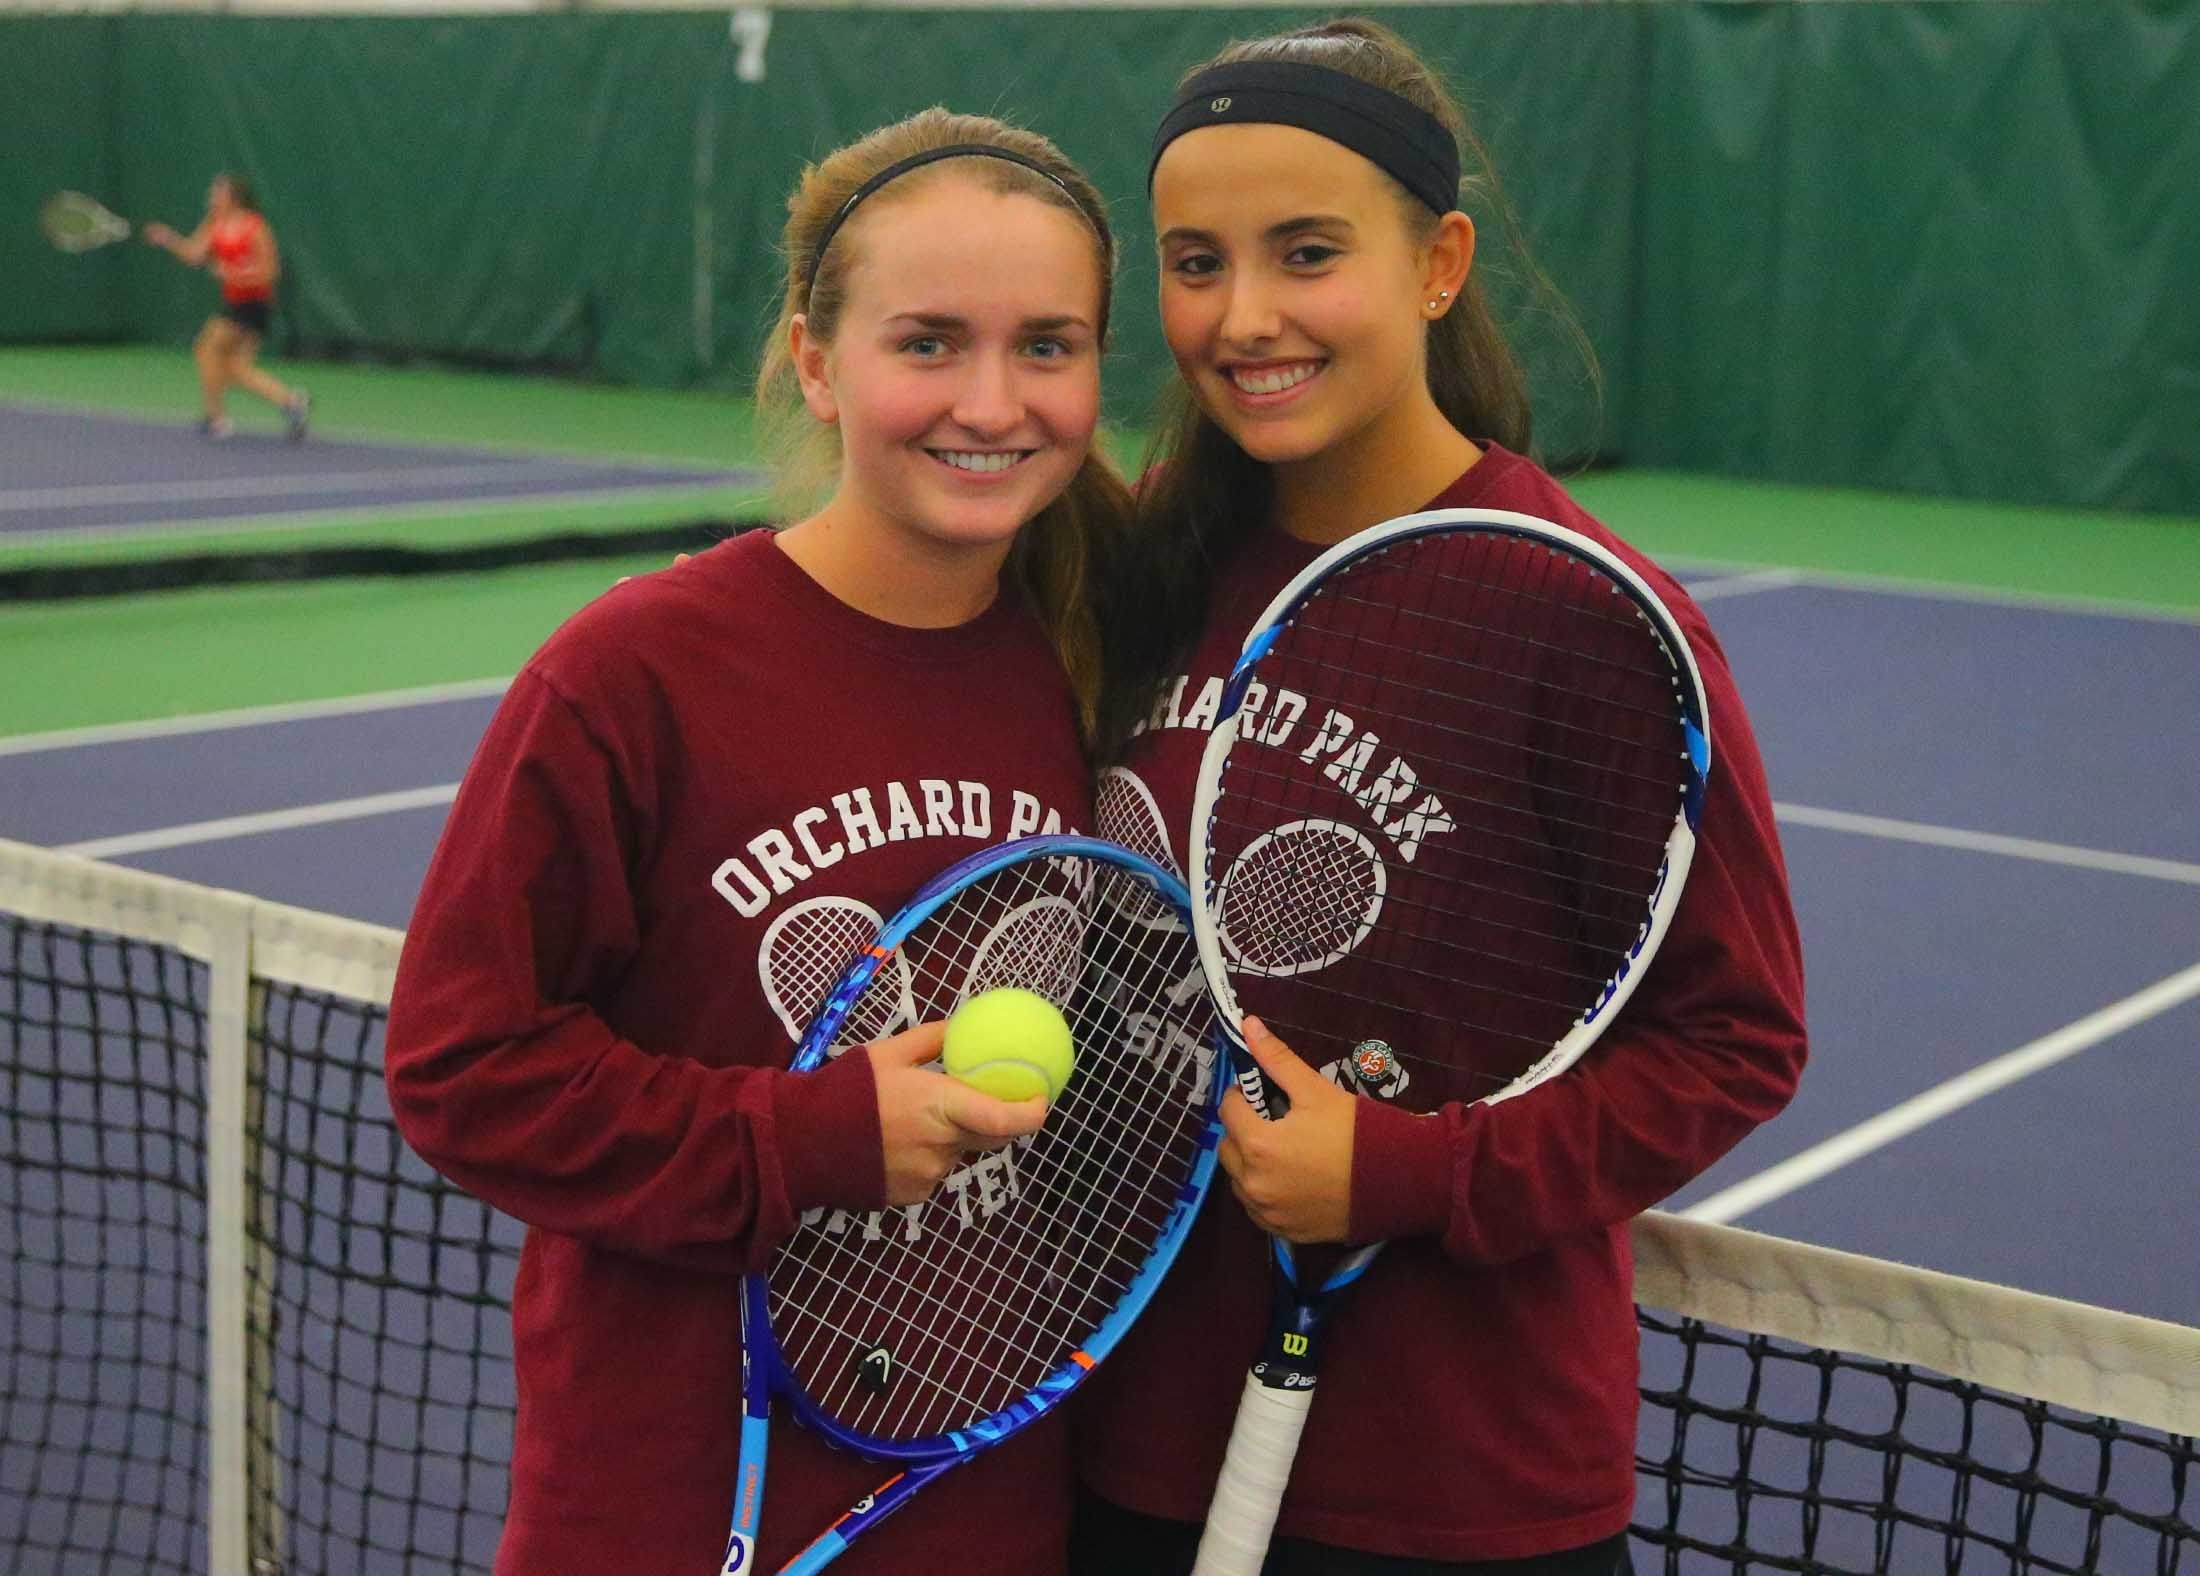 Orchard Park's Kristen Zabionski, left, and Lauren Karogian won the Section VI doubles championship at the Miller Tennis Center (John Hickey/Buffalo News)